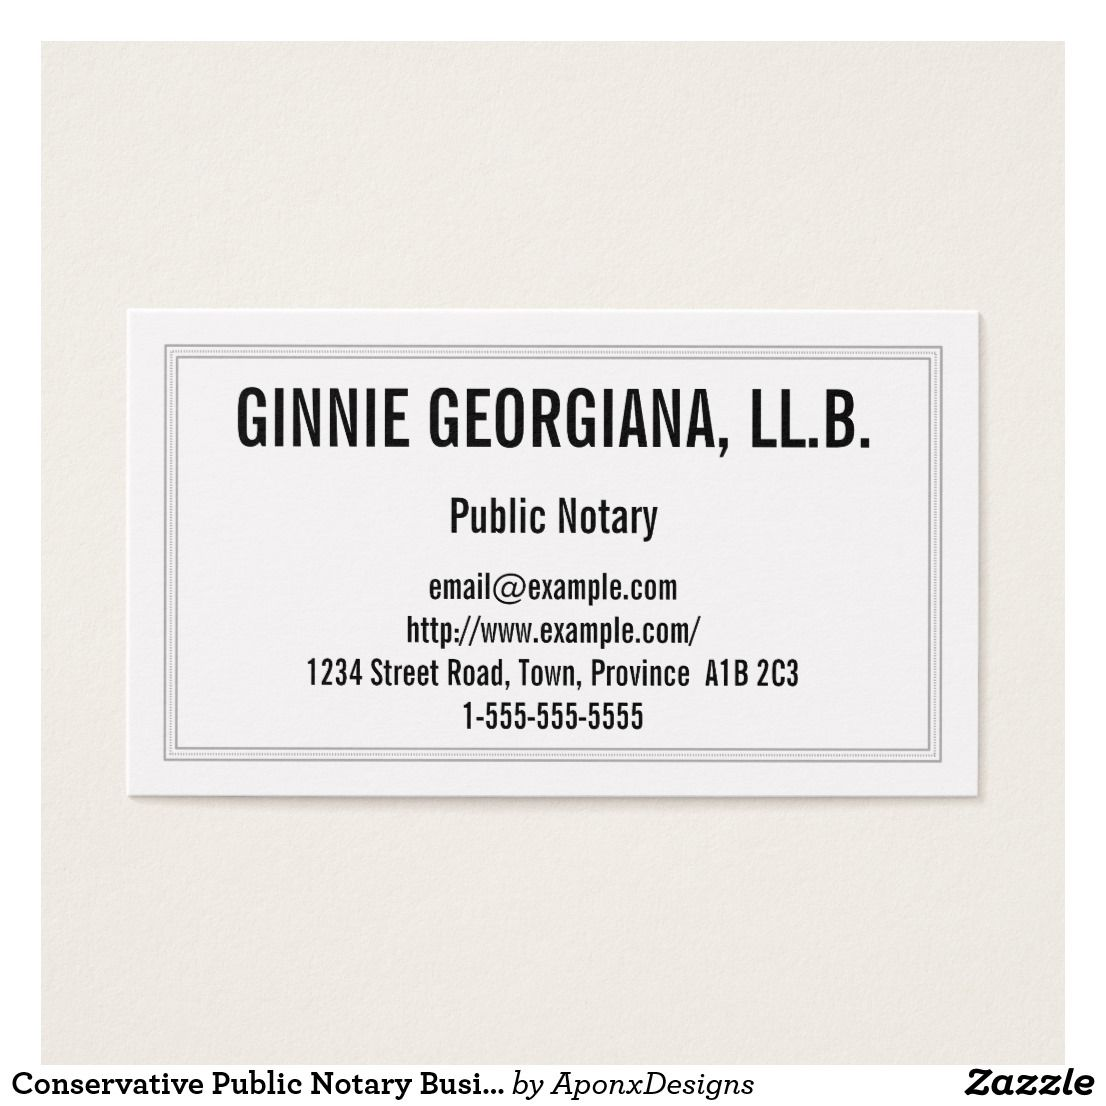 Conservative Public Notary Business Card | Customizable Business ...